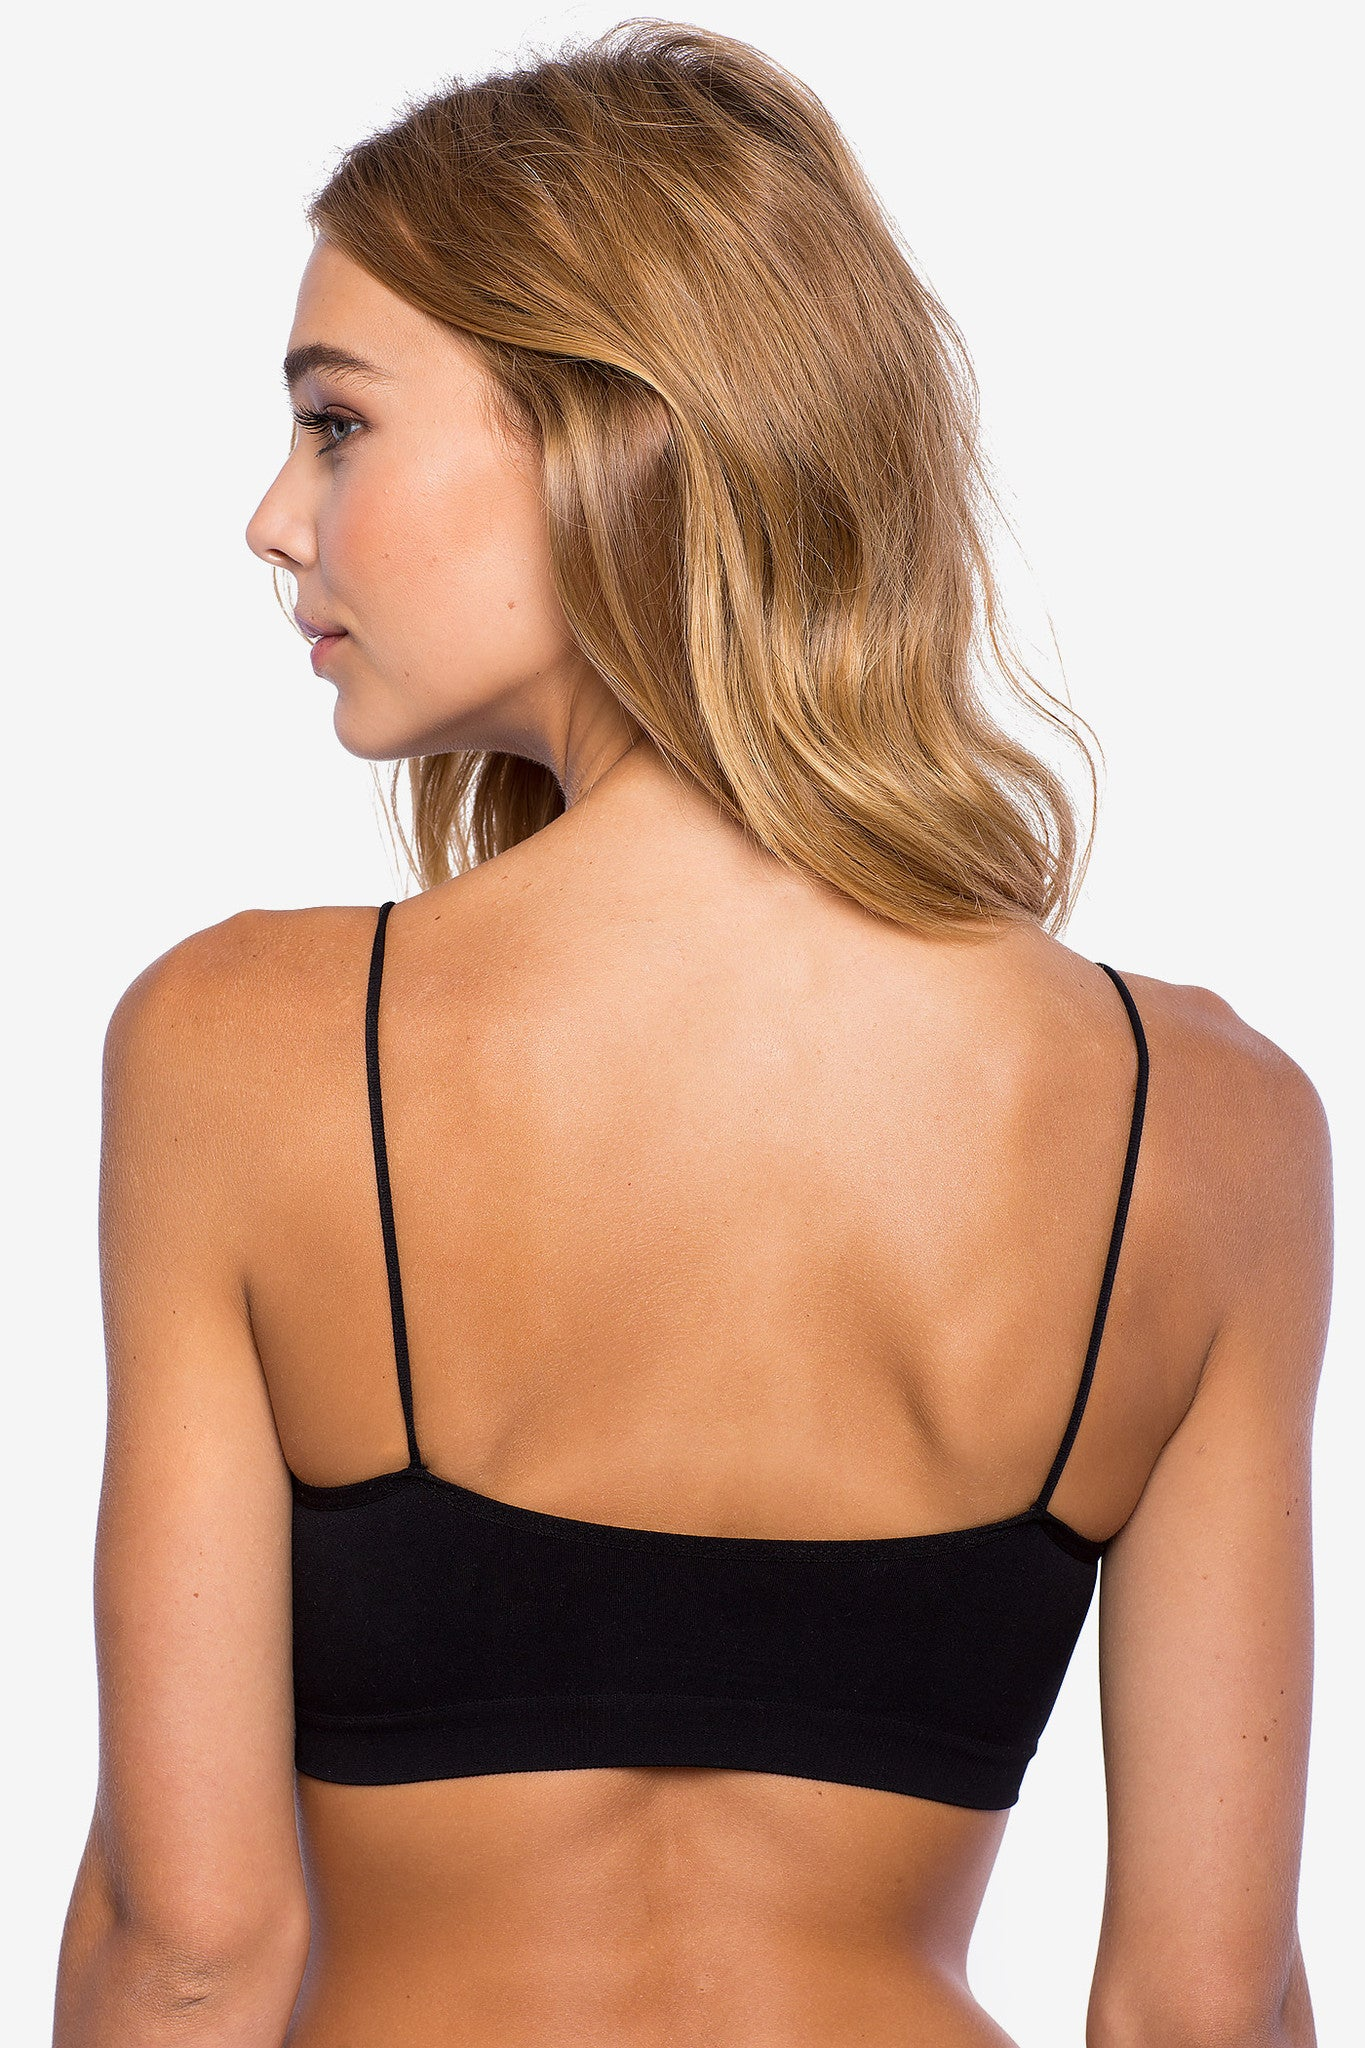 f665cfe705489 ... Strapped In Bralette - Chapter24 - 2 ...